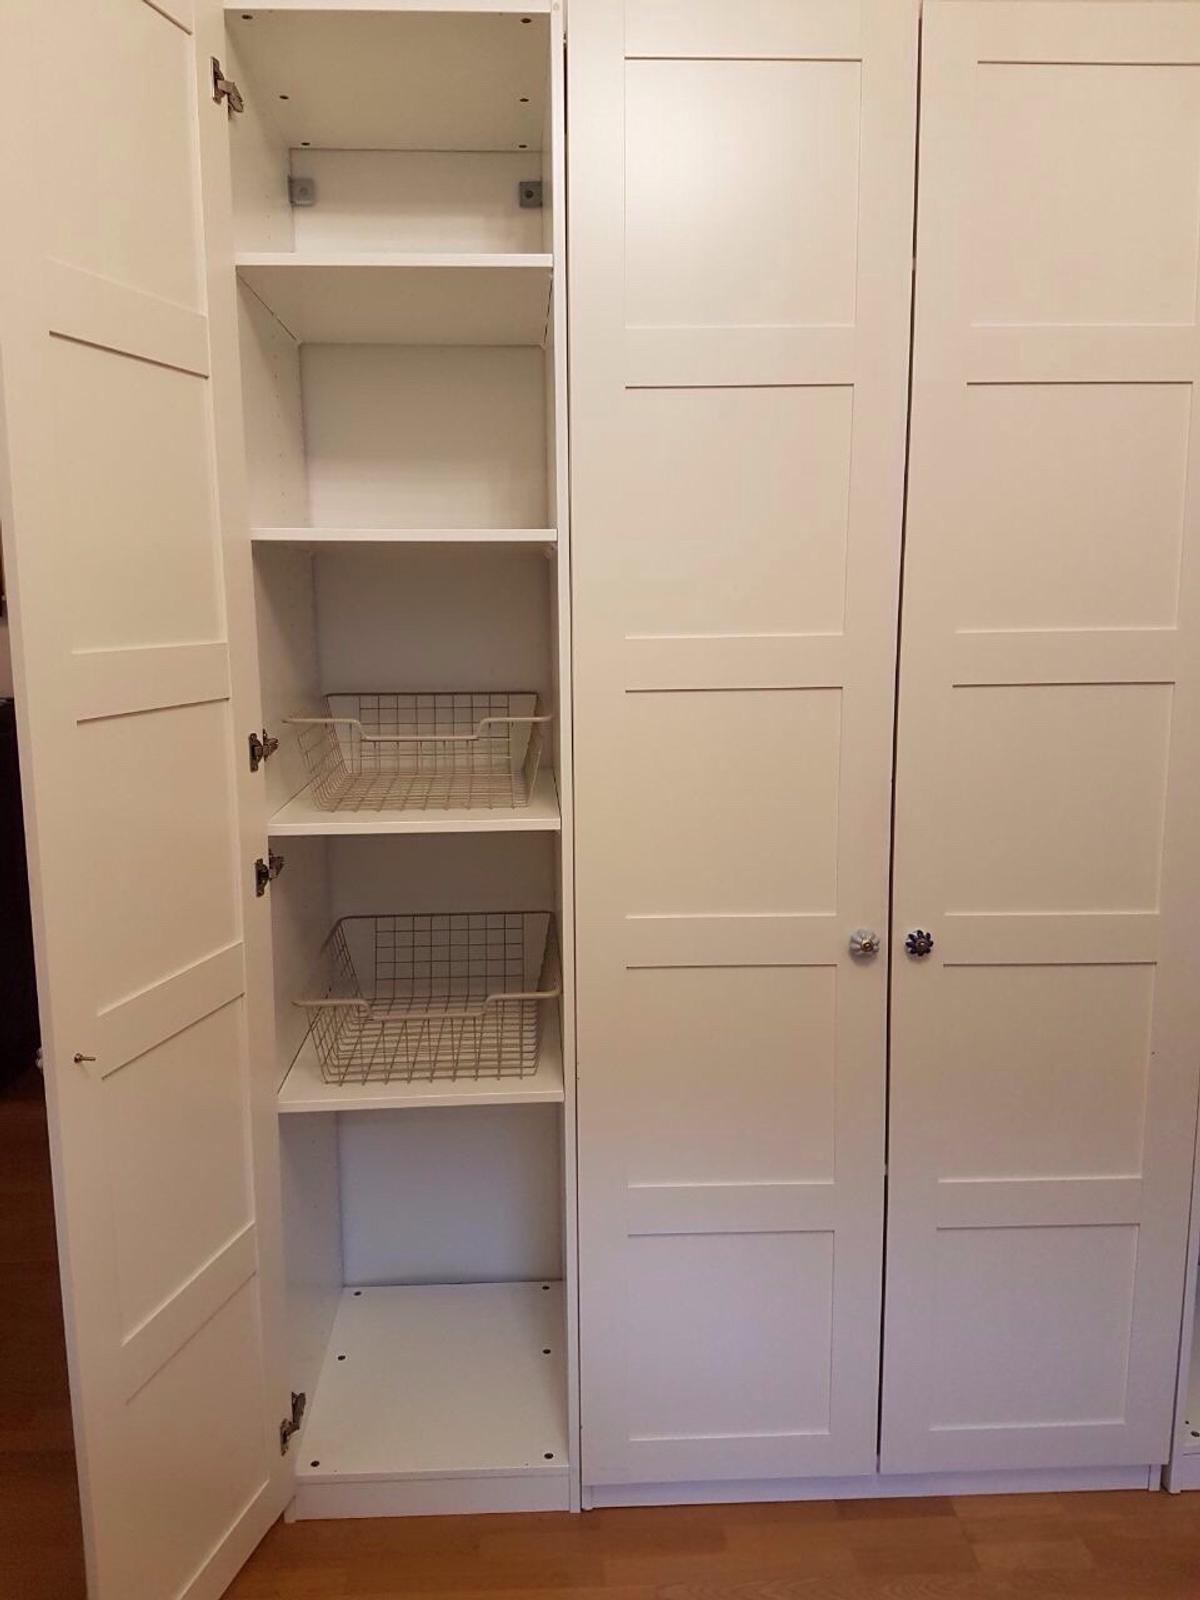 Kleiderschrank Landhausstil Holz Kleiderschrank Pax Landhausstil, Dreiteilig In 60486 Frankfurt Am Main For €250.00 For Sale | Shpock